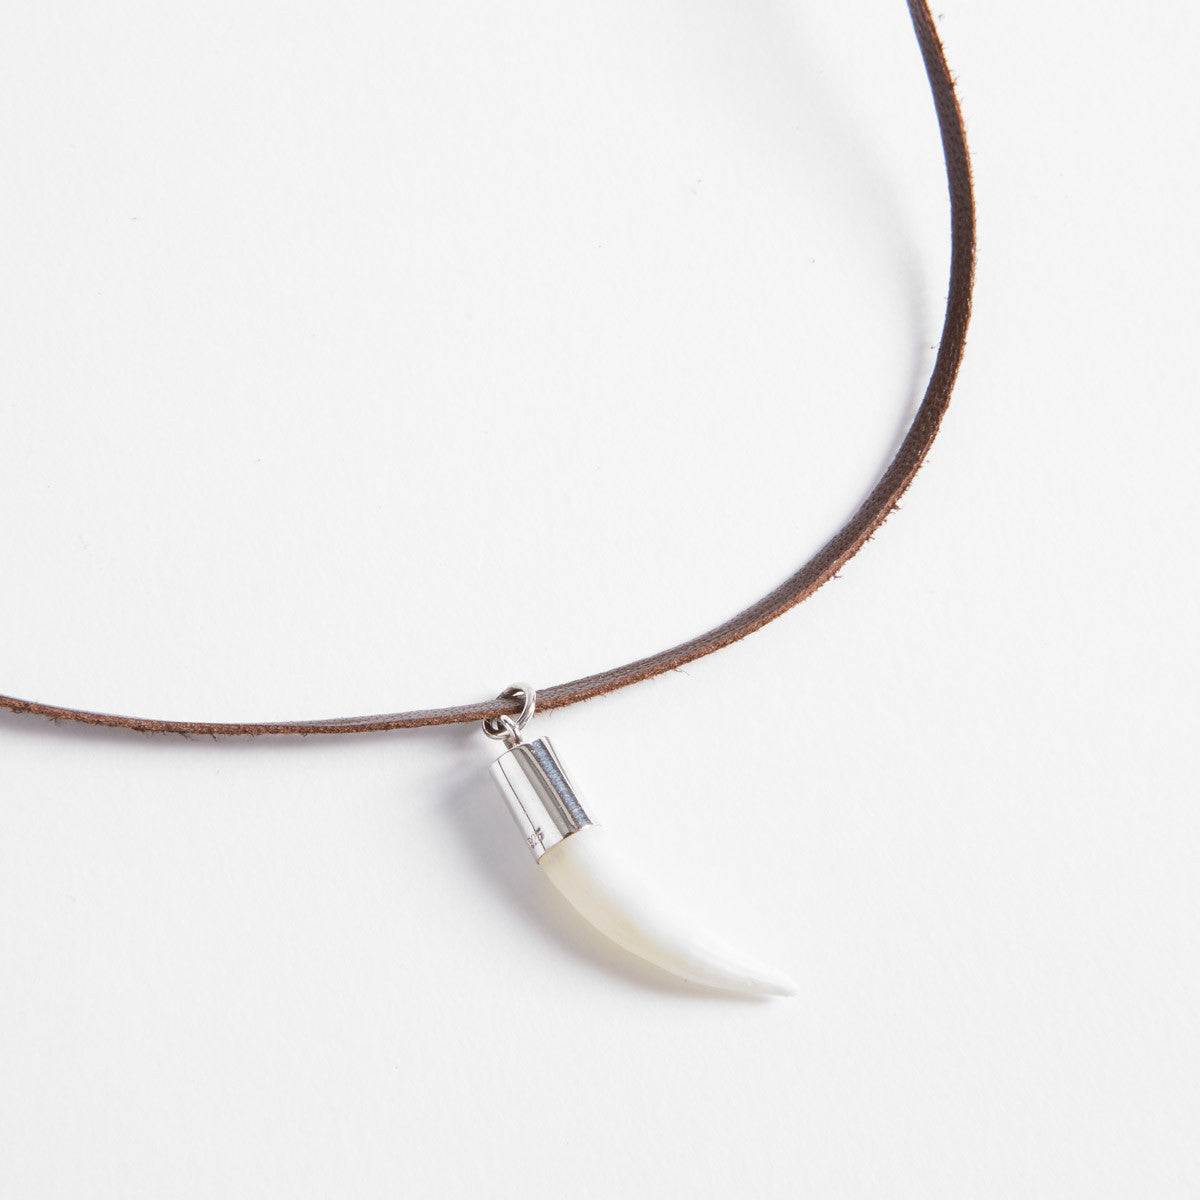 b58b477c106 Crocodile Tooth Necklace | Croc Stock and Barra